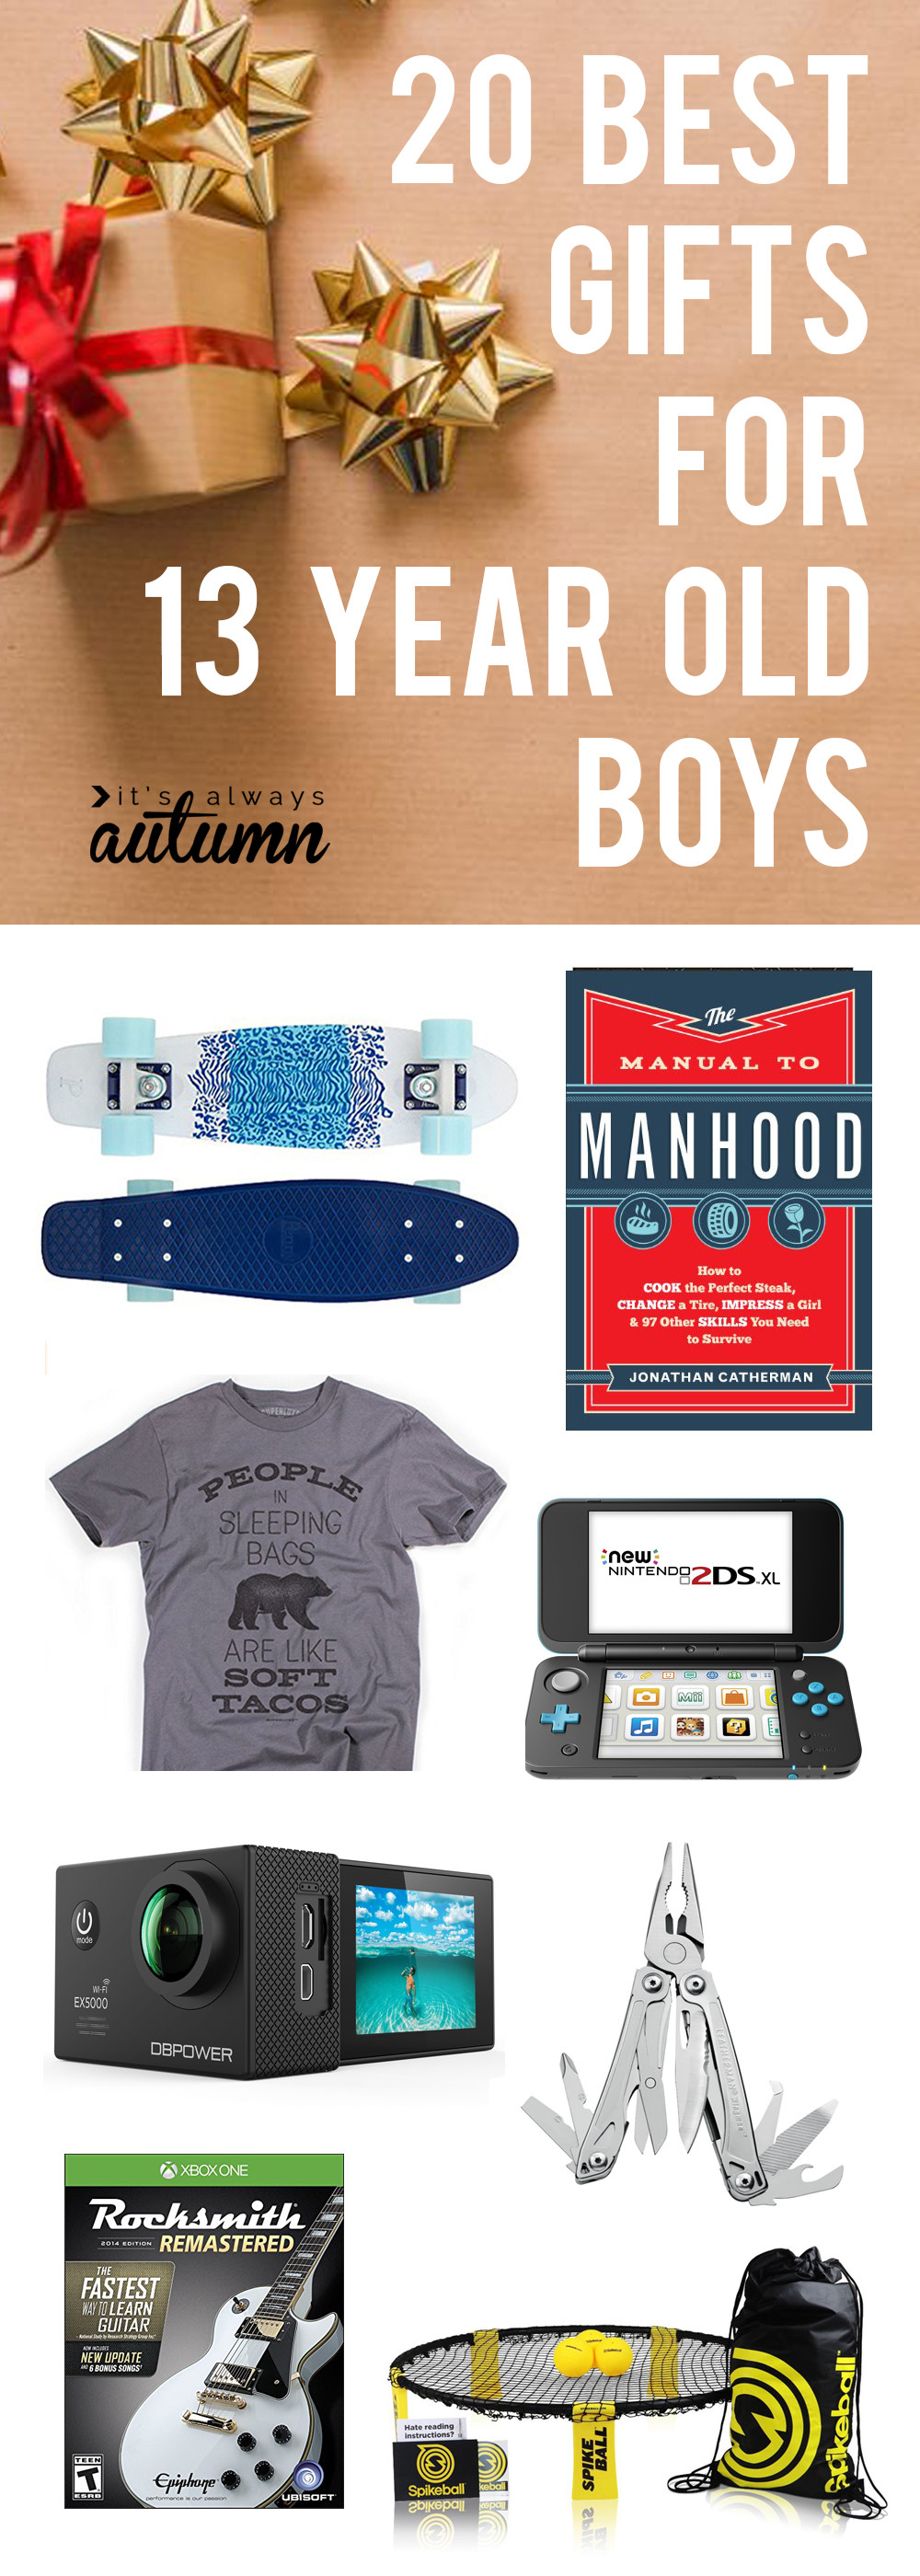 Best ideas about Gift Ideas For 15 Year Old Boys . Save or Pin best Christmas ts for 13 year old boys It s Always Autumn Now.